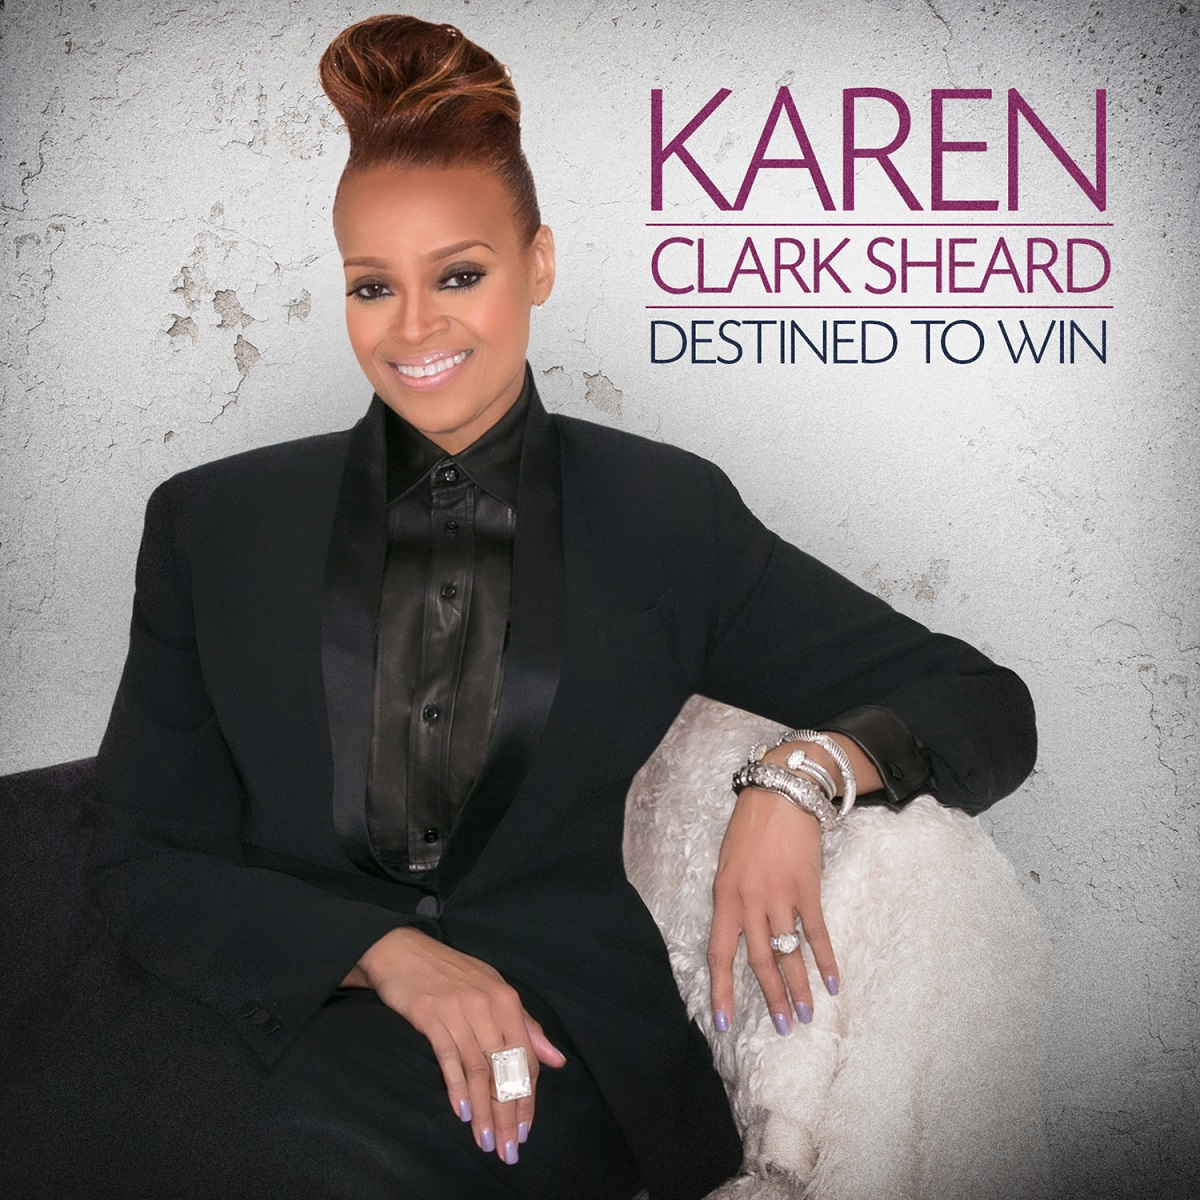 Karen Clark-Sheard – Destined to Win (July 17th release)